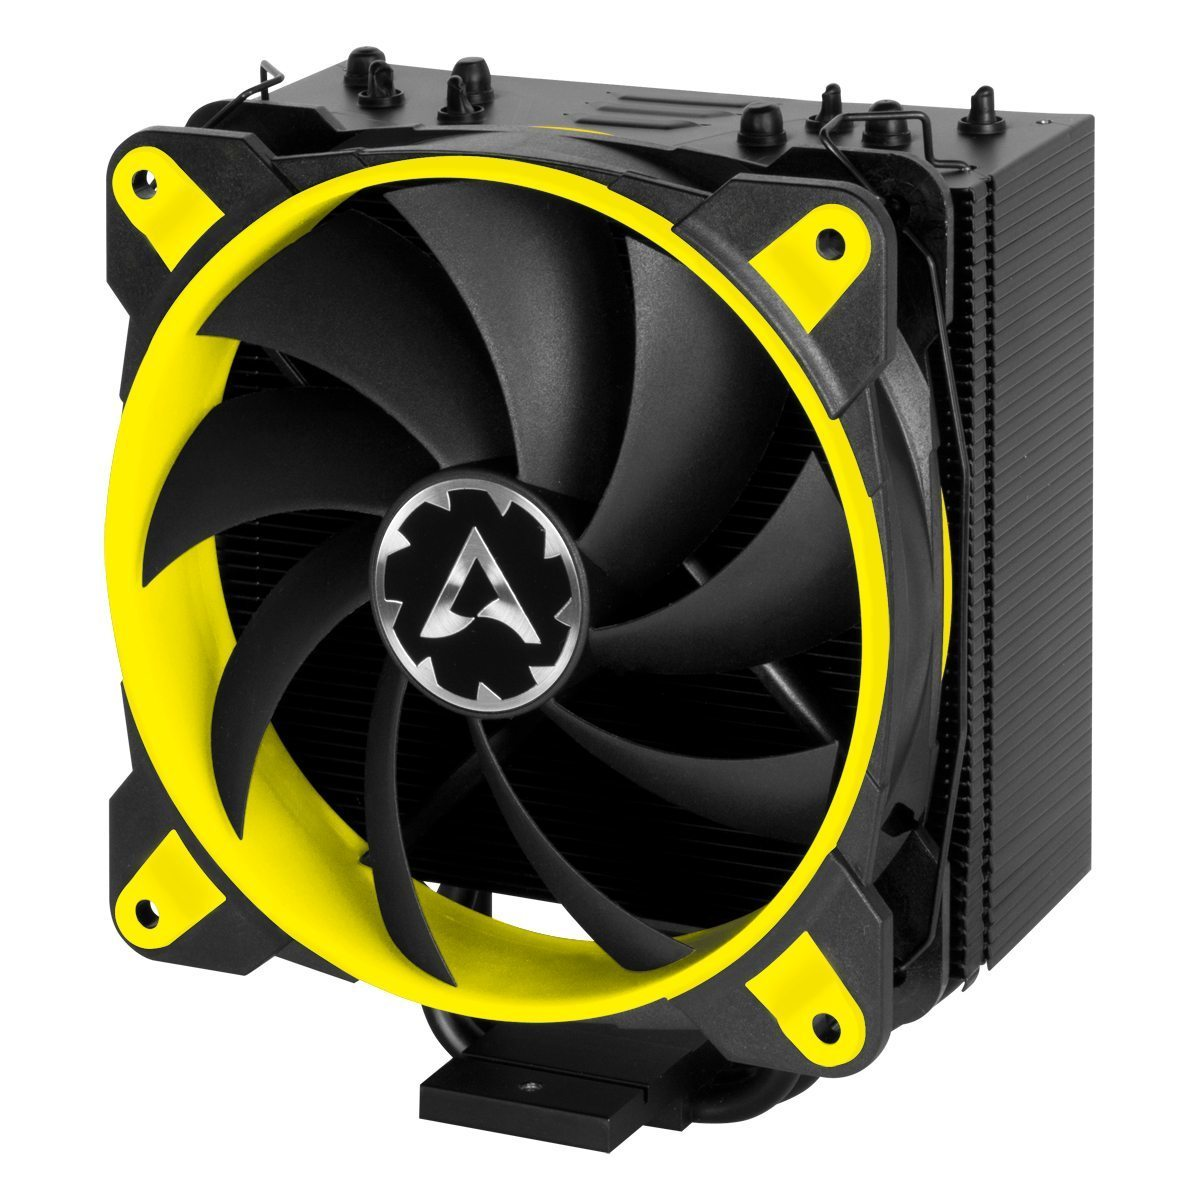 Freezer 33 eSports ONE - Yellow - LGA2066/LGA2011/LGA1151/AM4